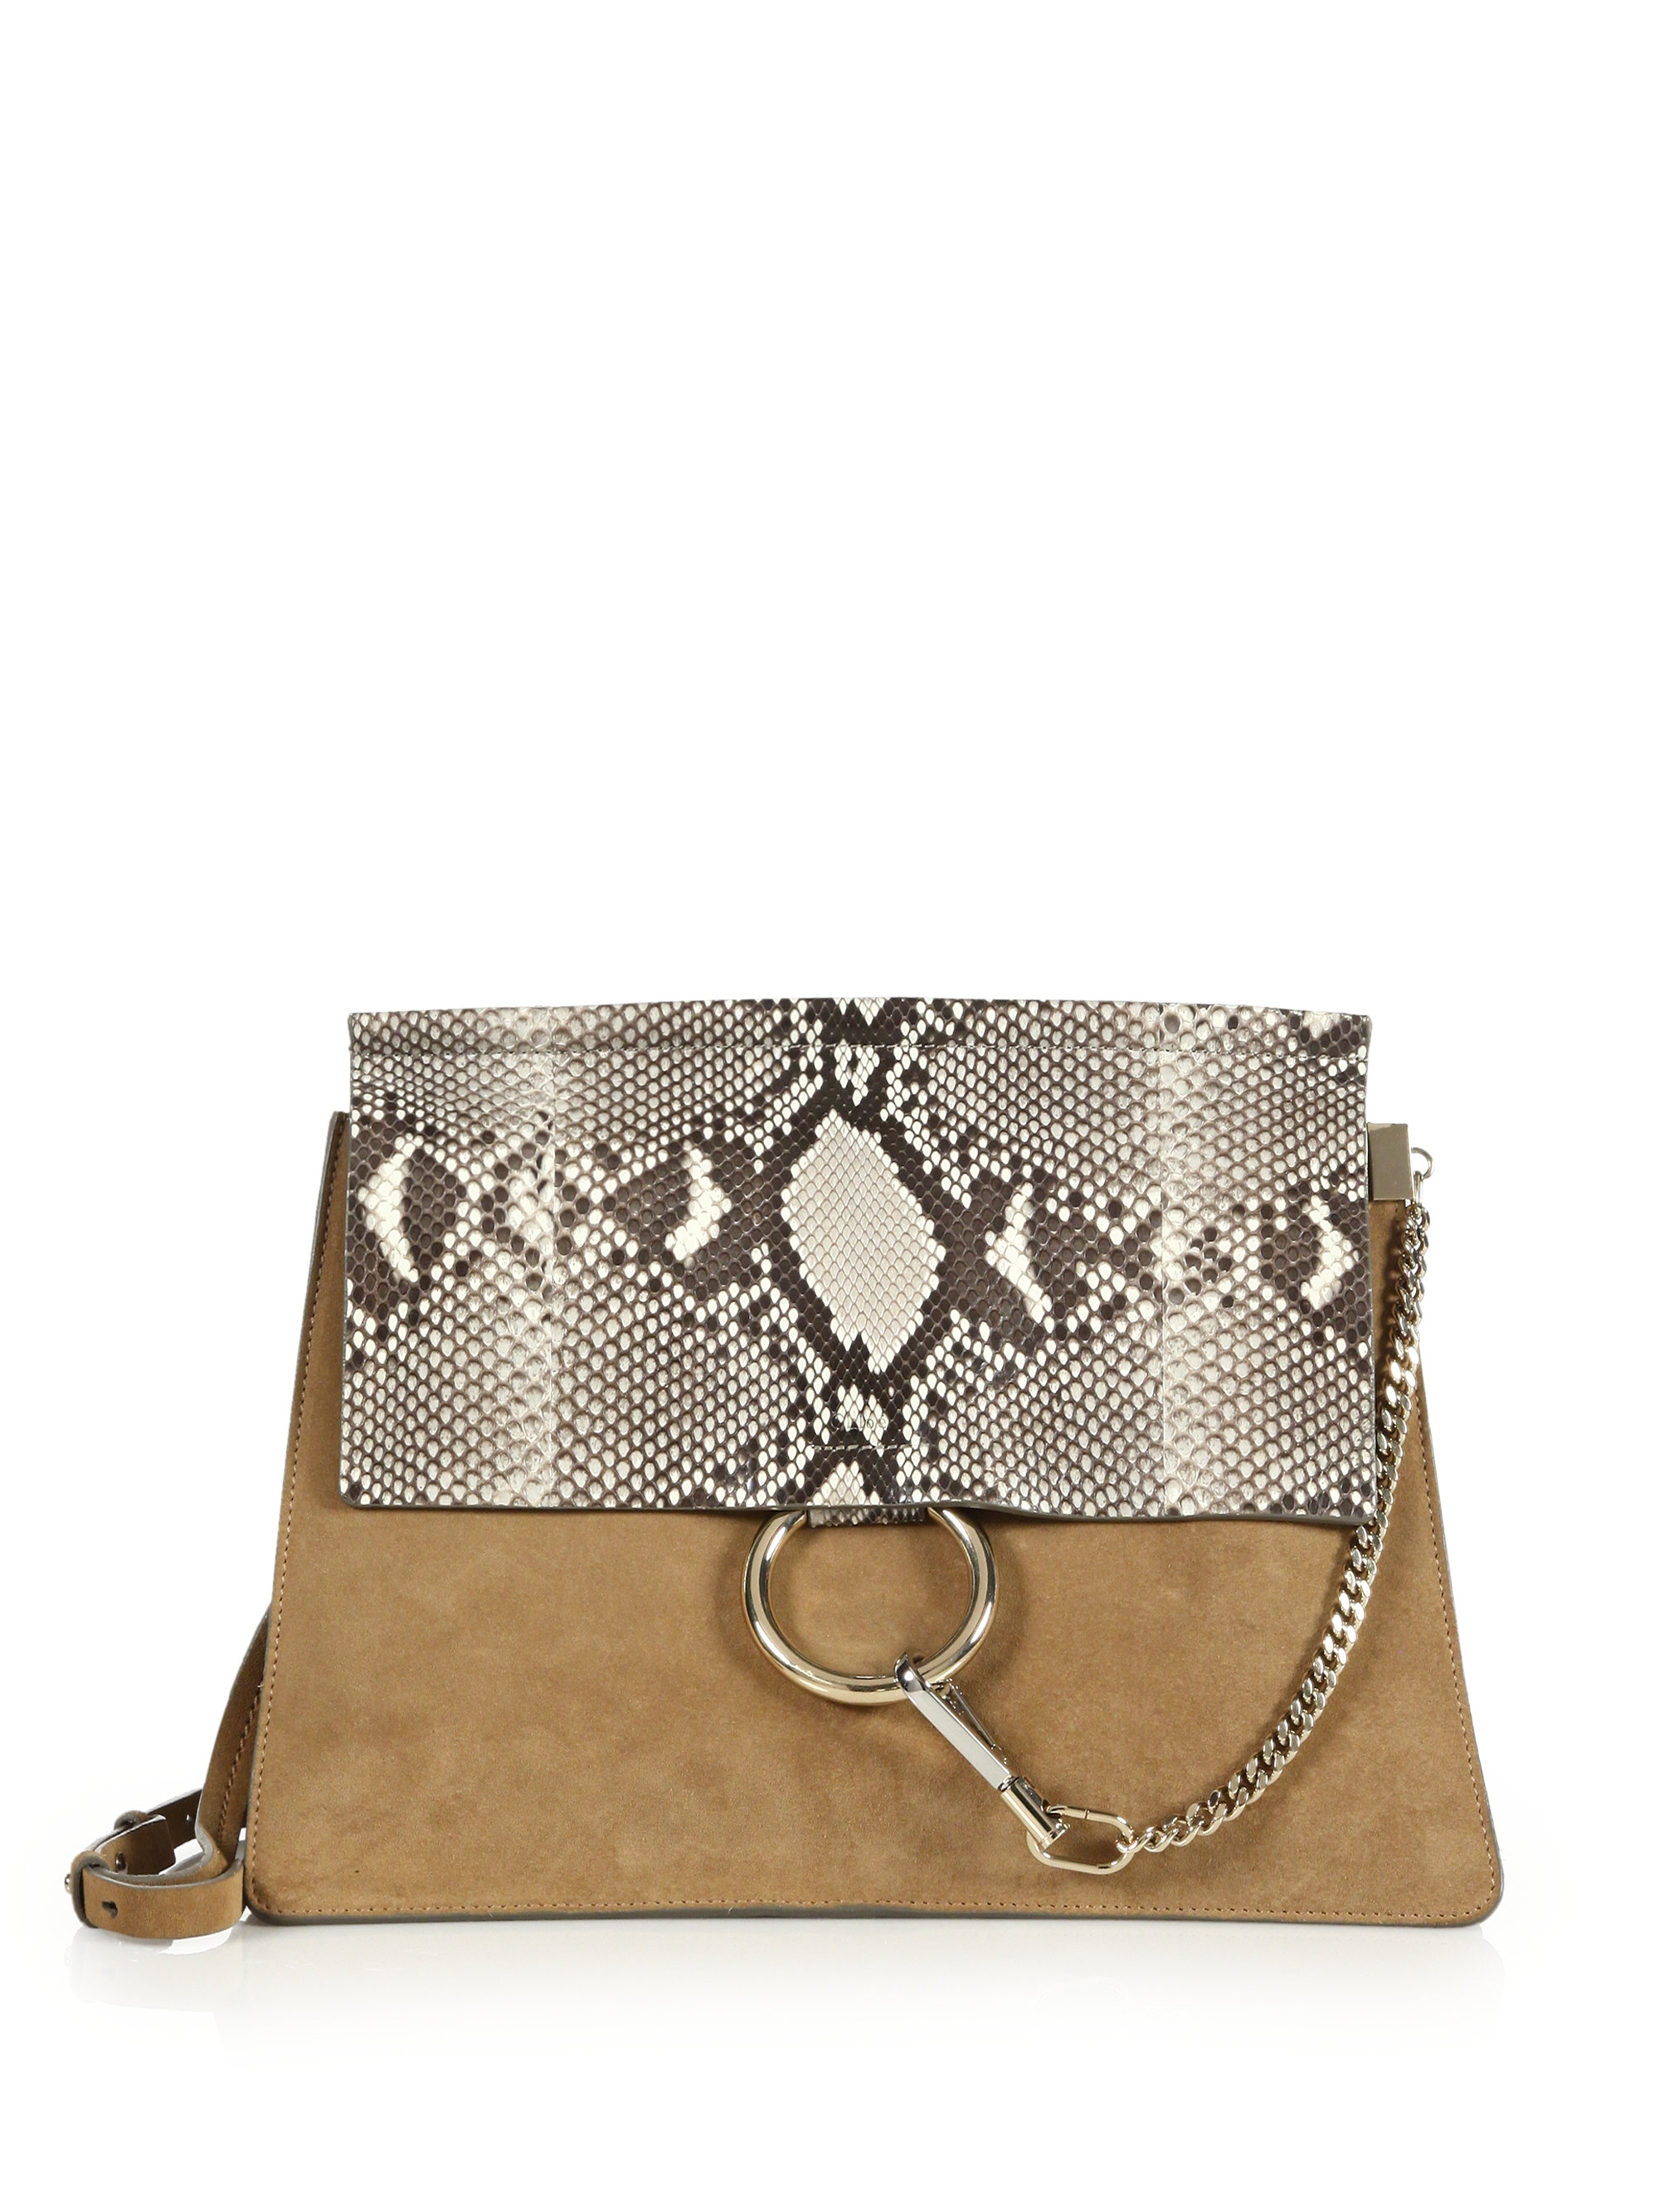 a4b005979b1 Chloe Faye Medium Handbag